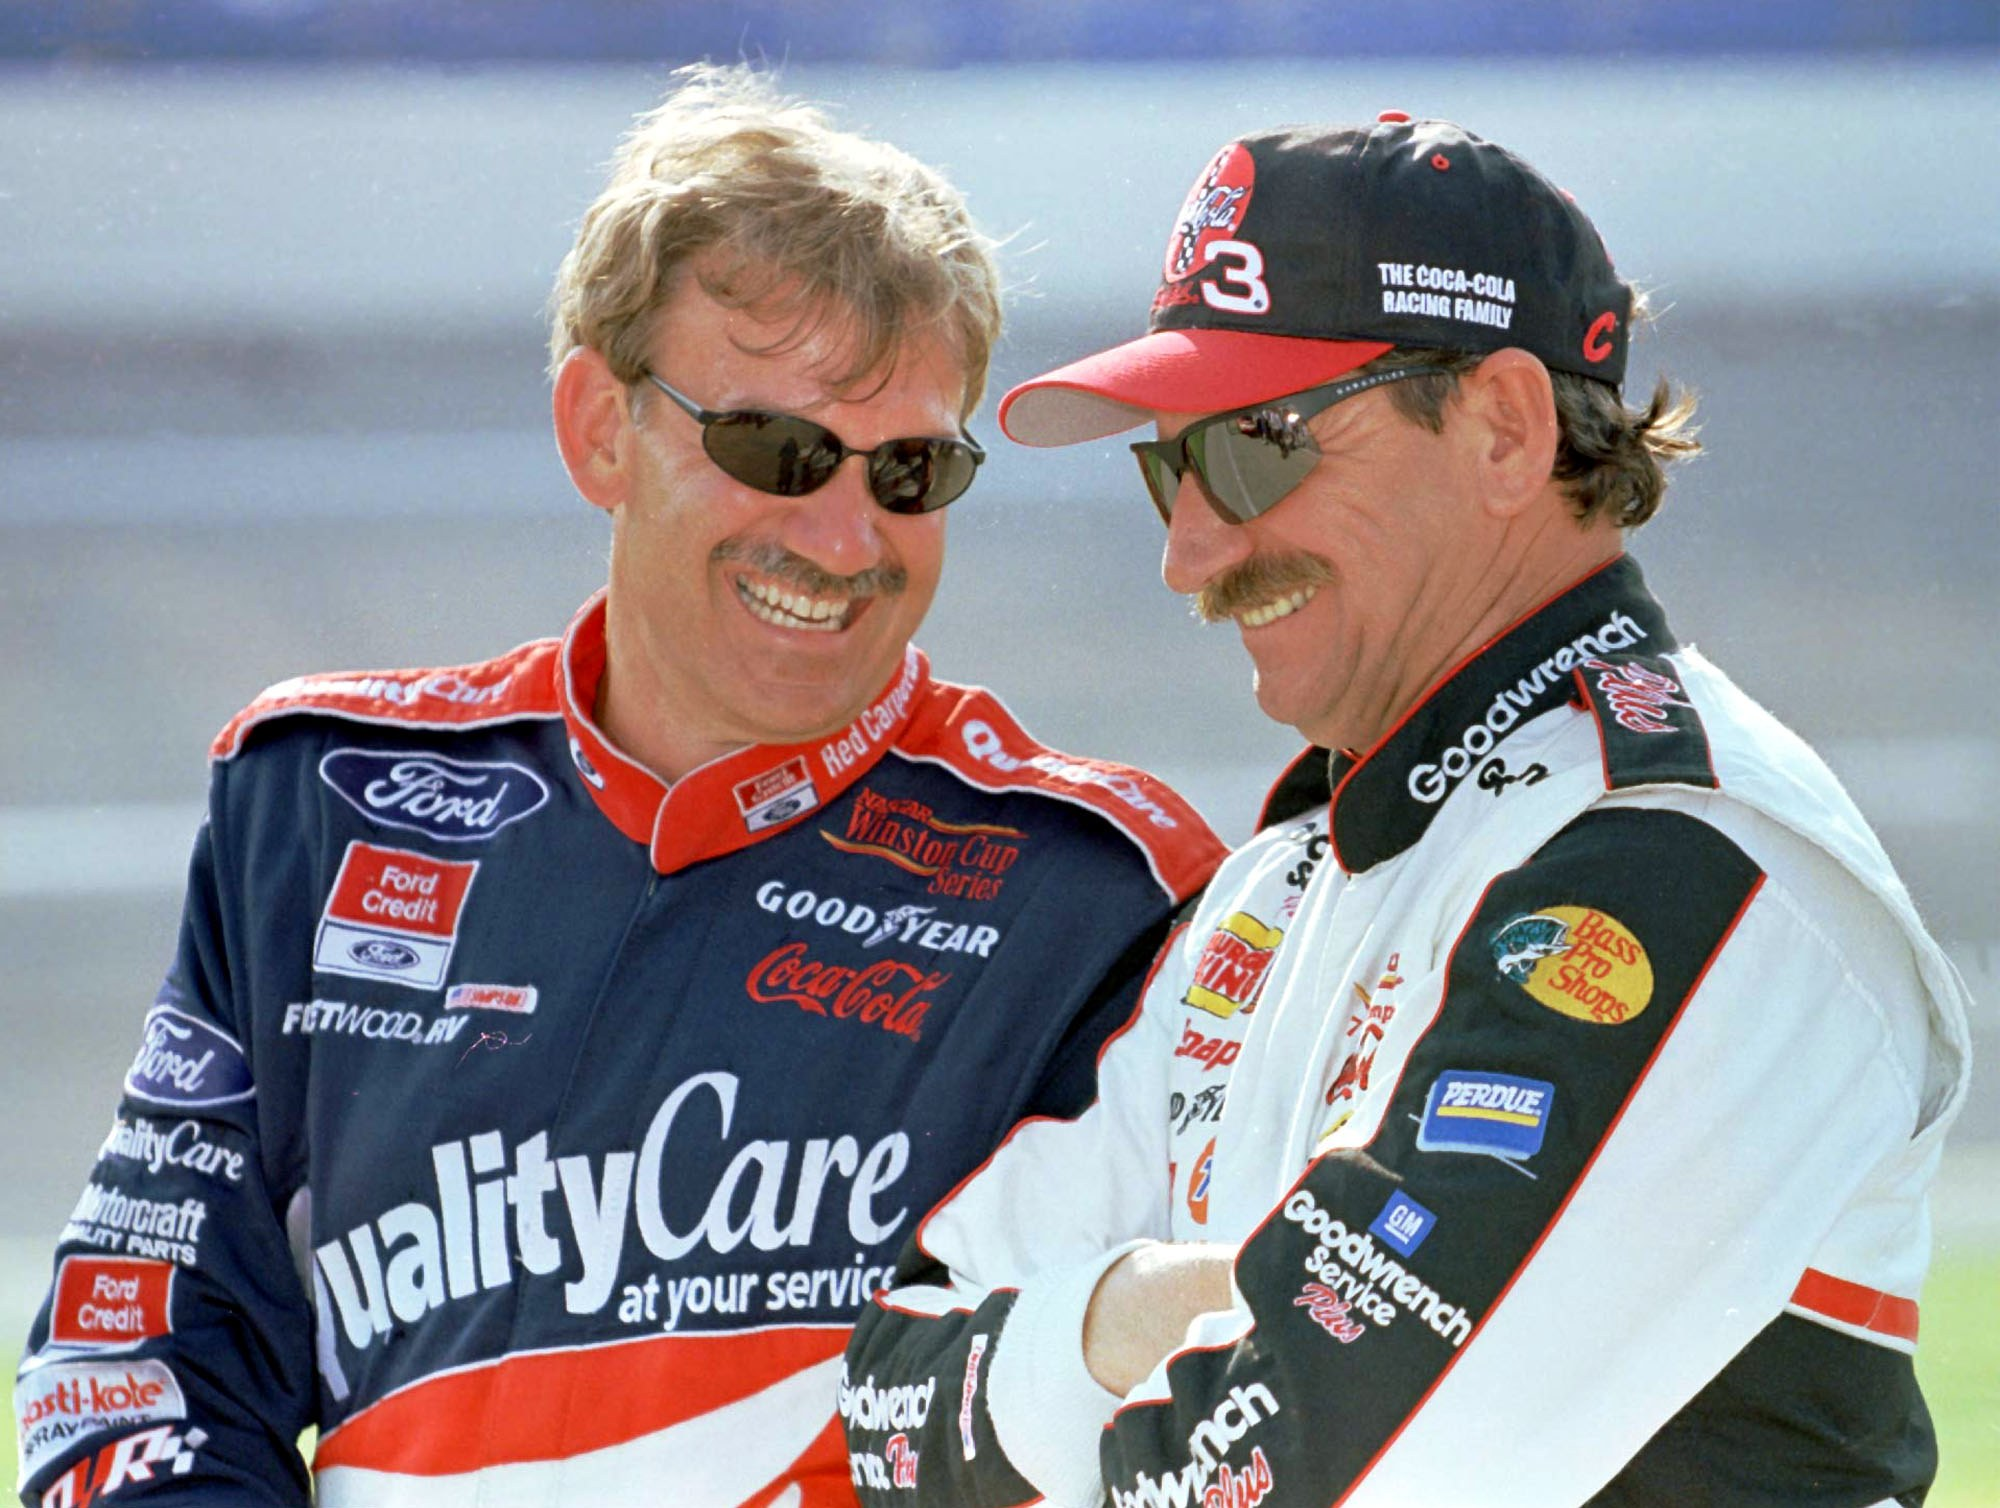 A Different Dale & Dale Show